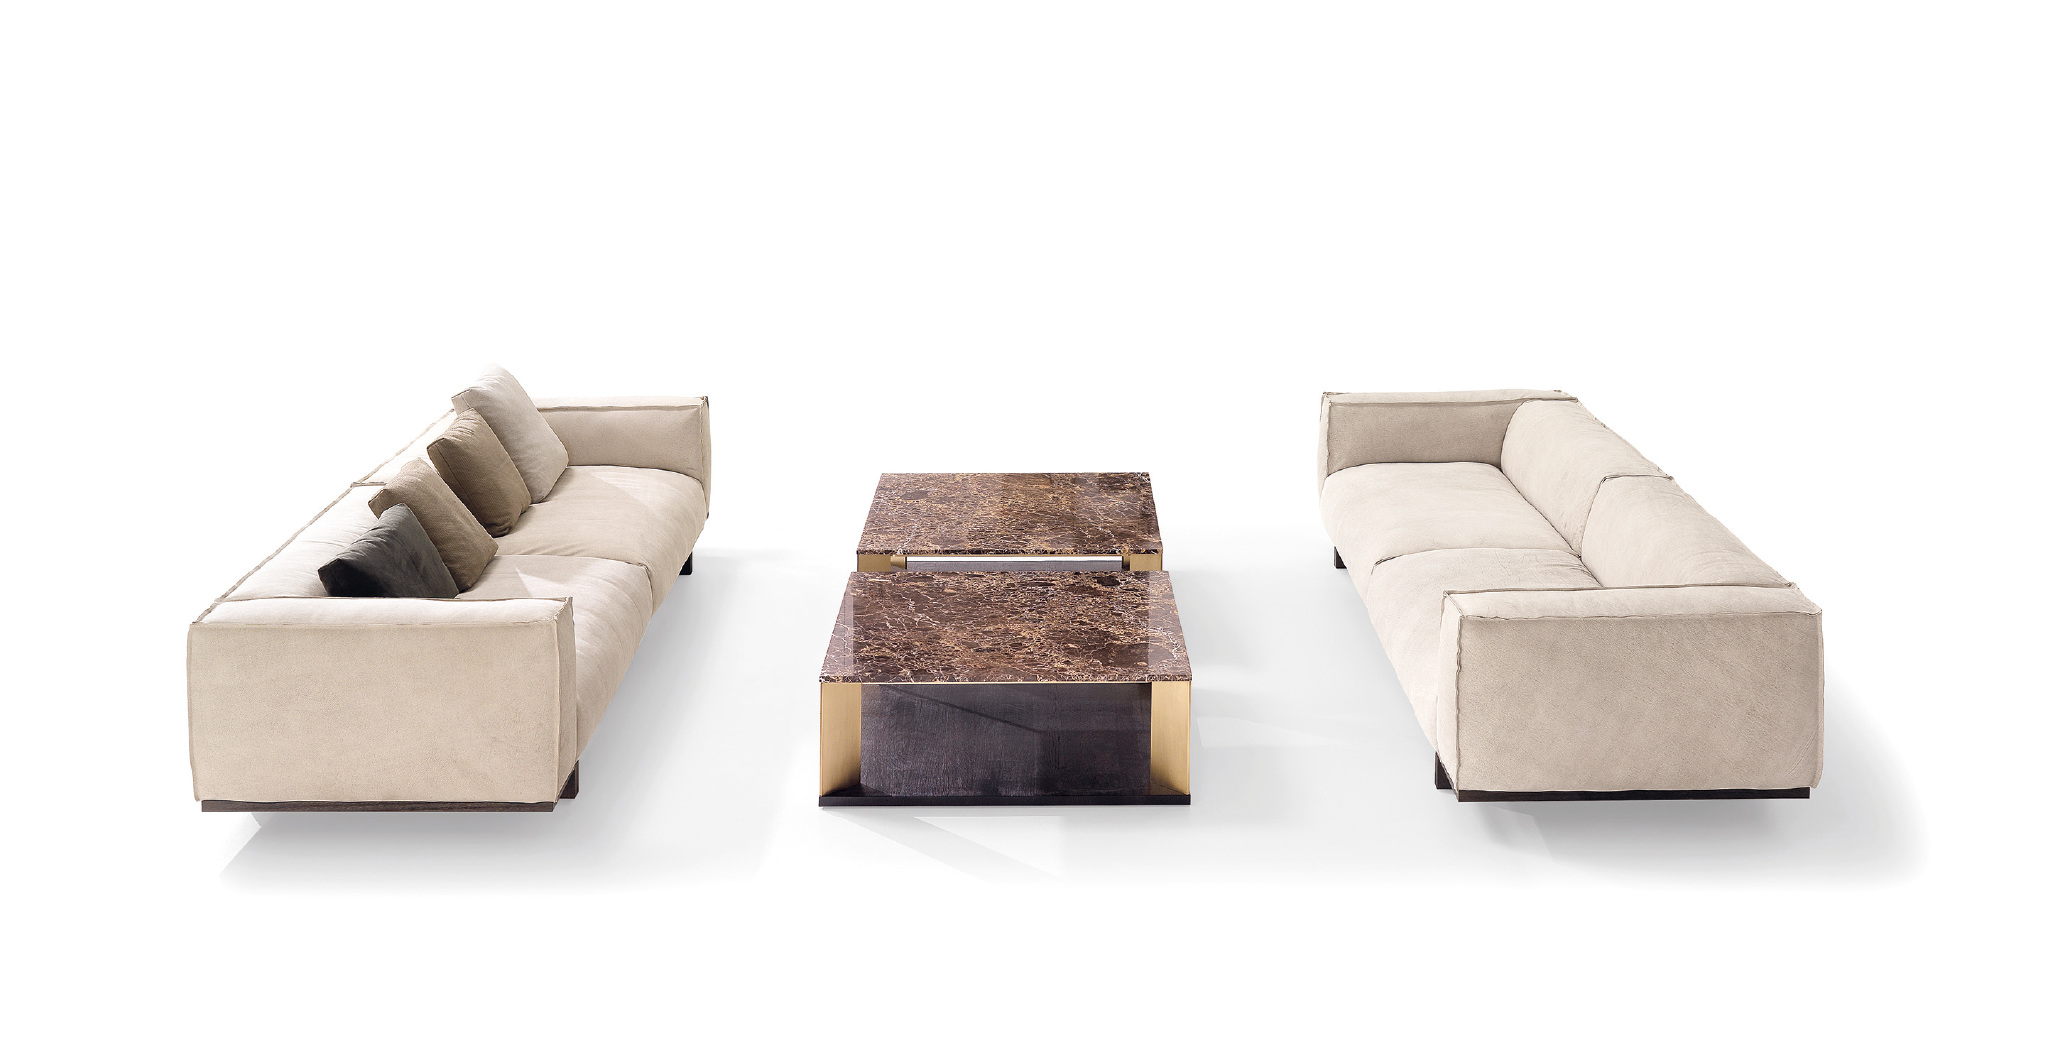 Mobil Fresno Interi Vision Nuvola sofas & twin tables